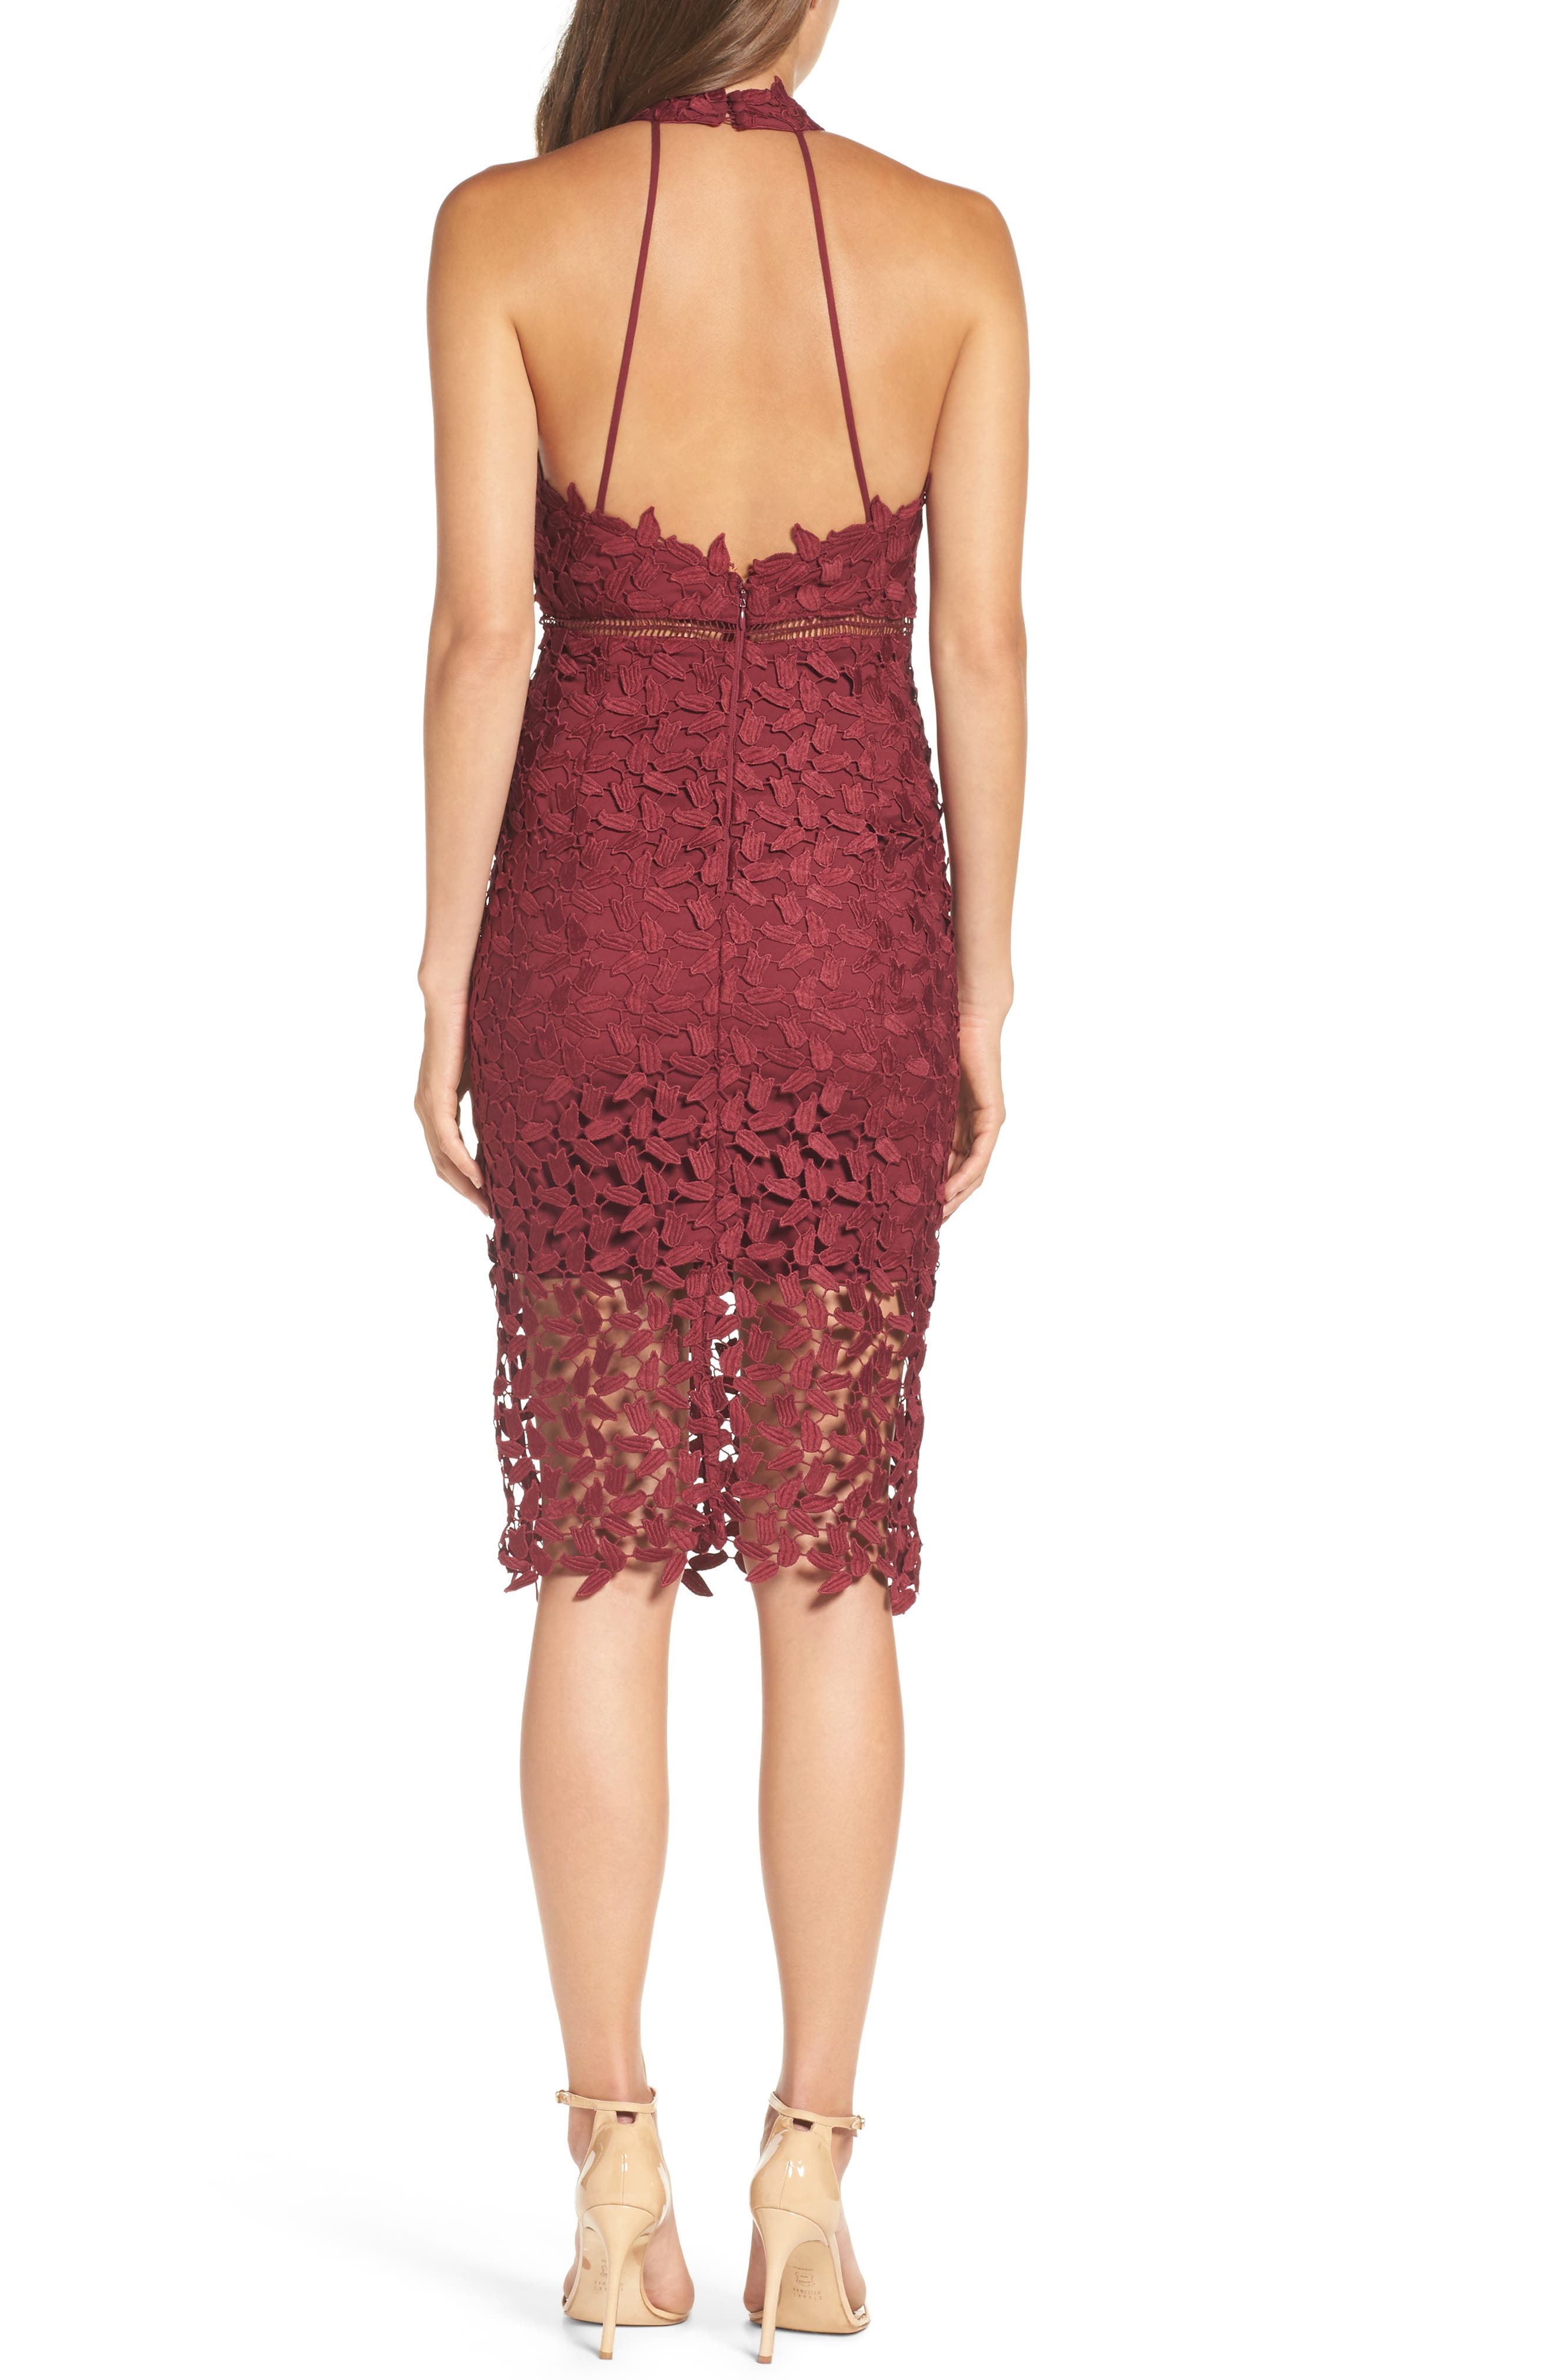 Red Cocktail & Party Dresses: Sequin, Lace, Mesh & More ...